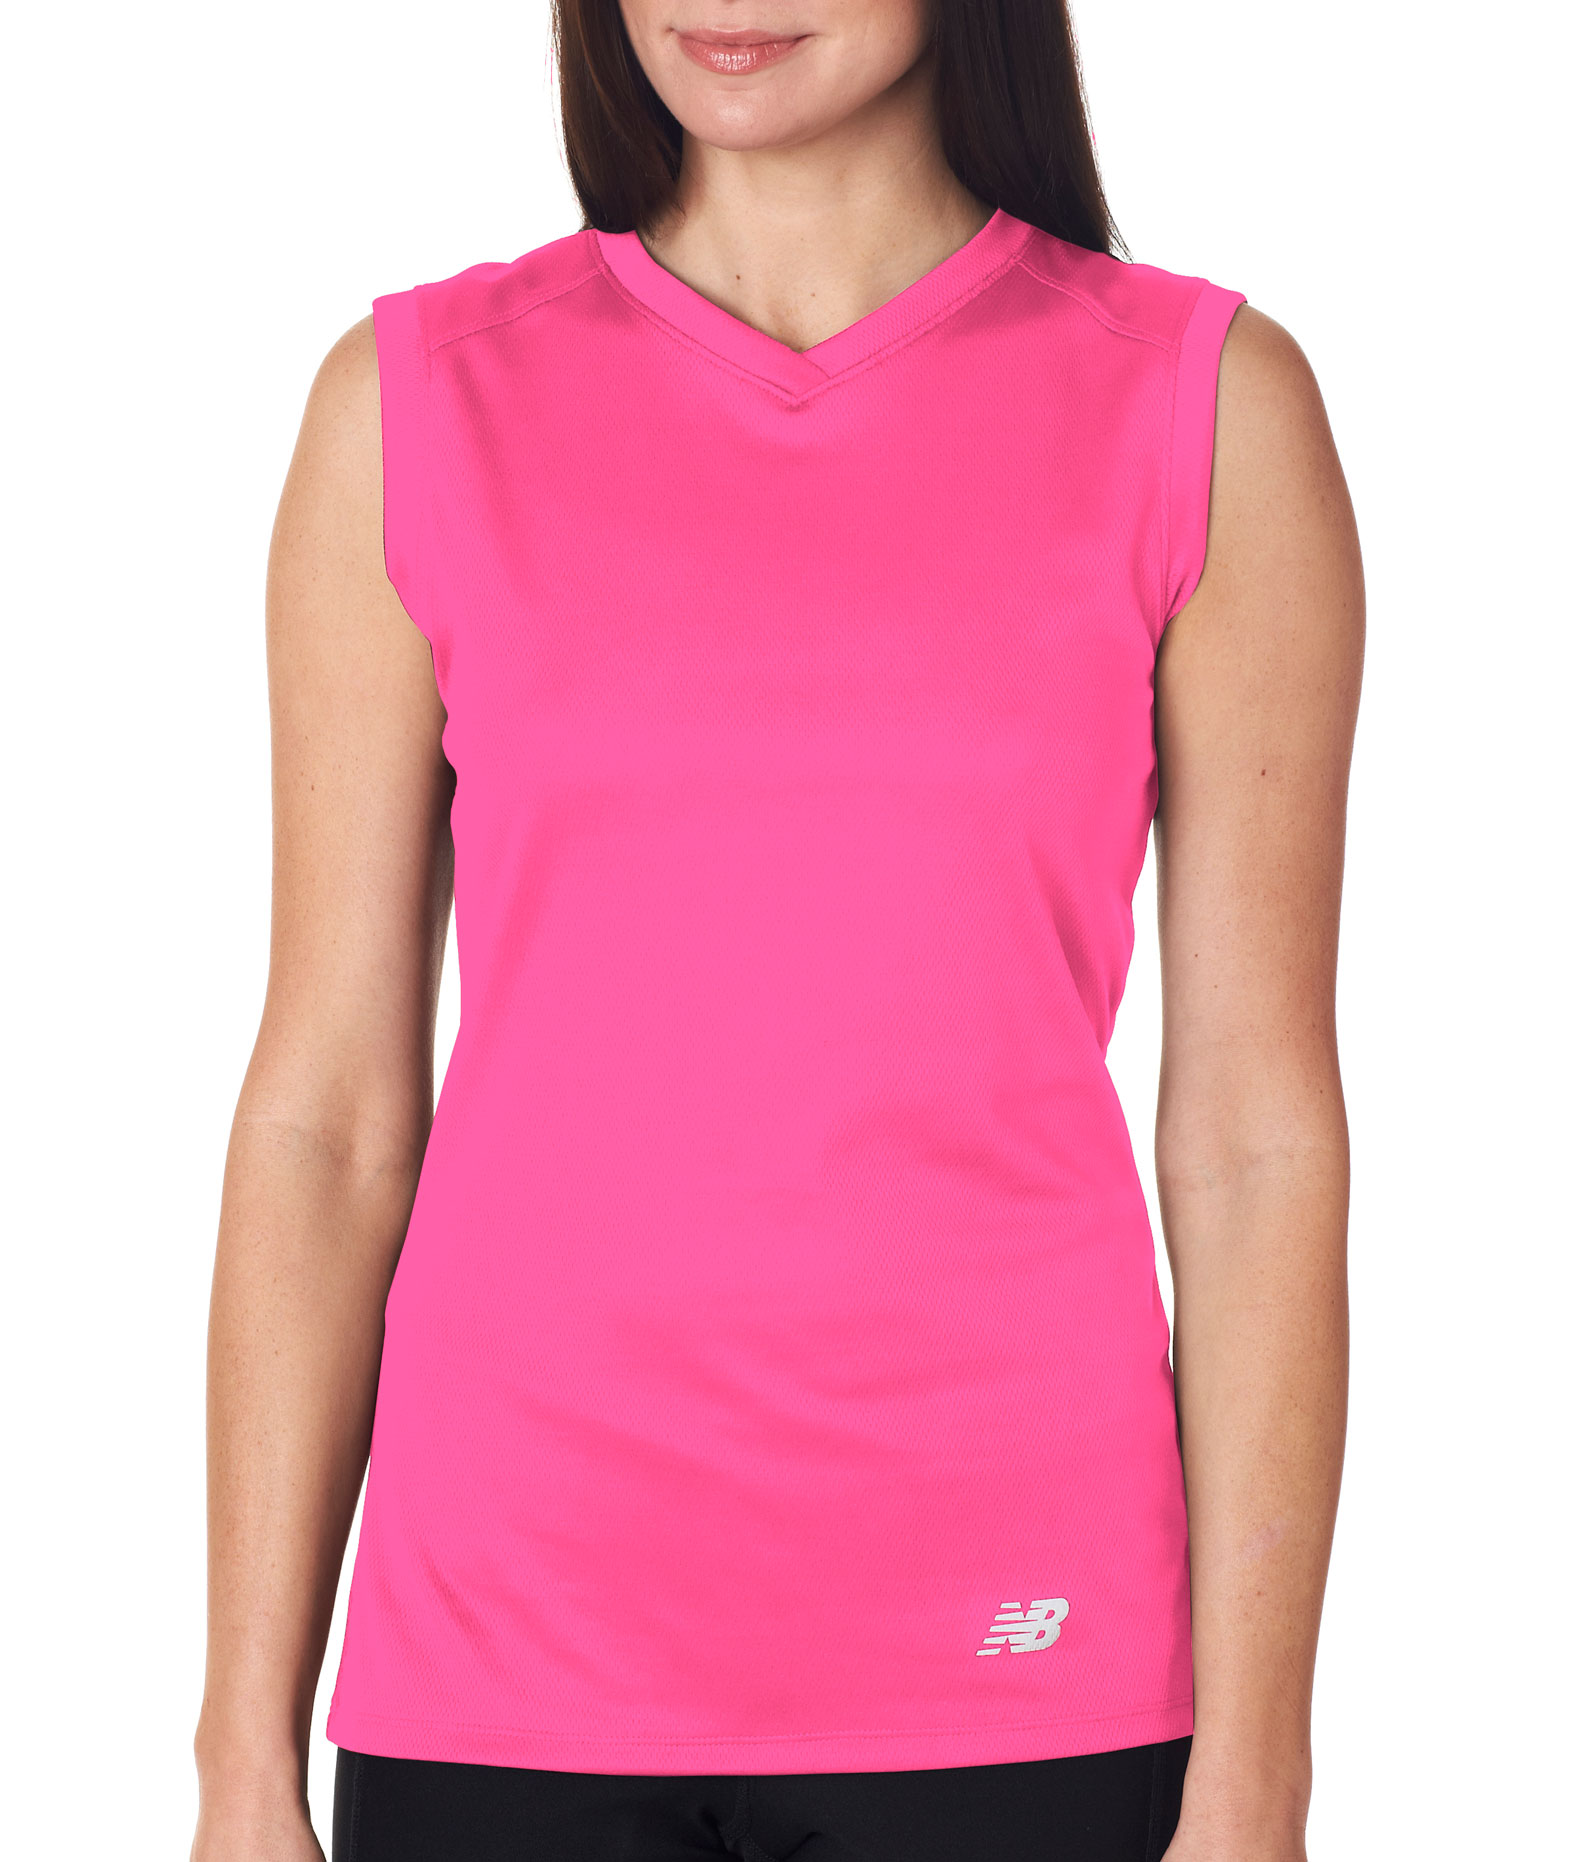 New Balance Ladies Ndurance Athletic V-Neck Workout T-shirt